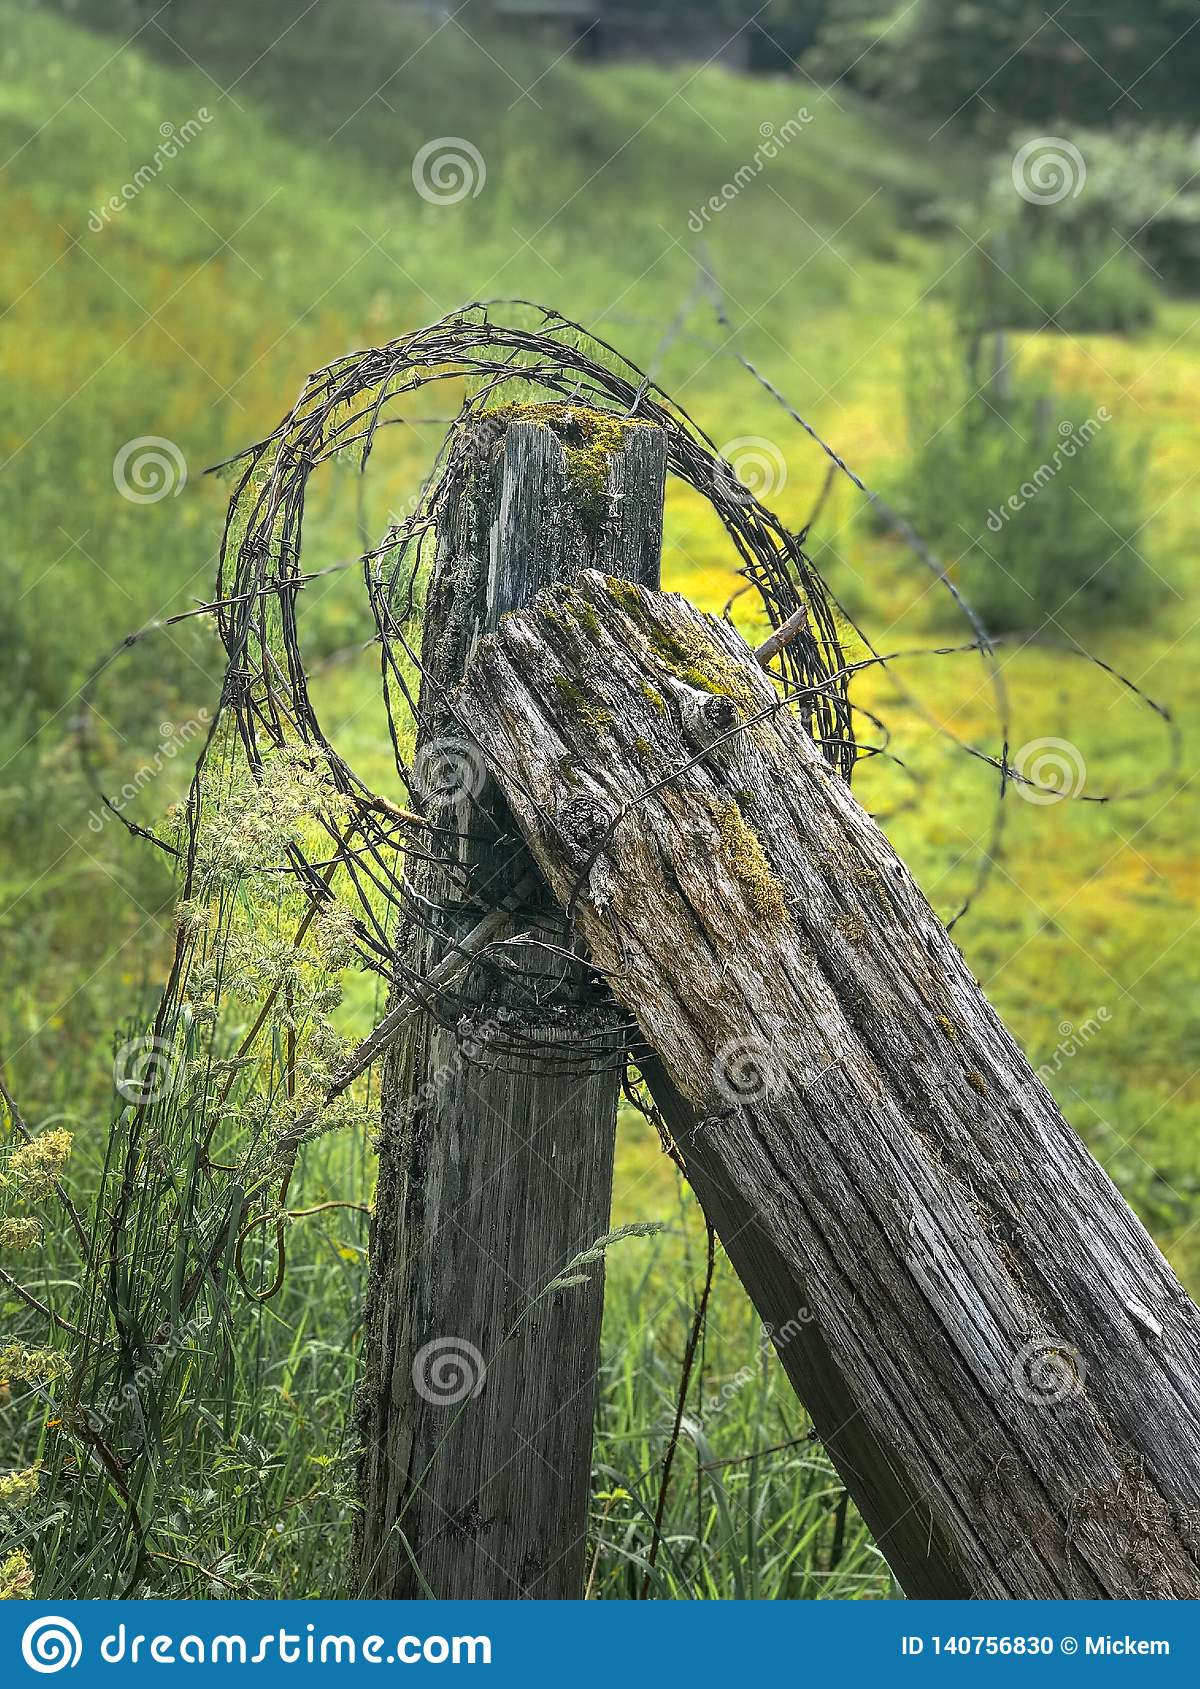 Old Fence Post With Barbed Wire Stock Photo - Image of ...